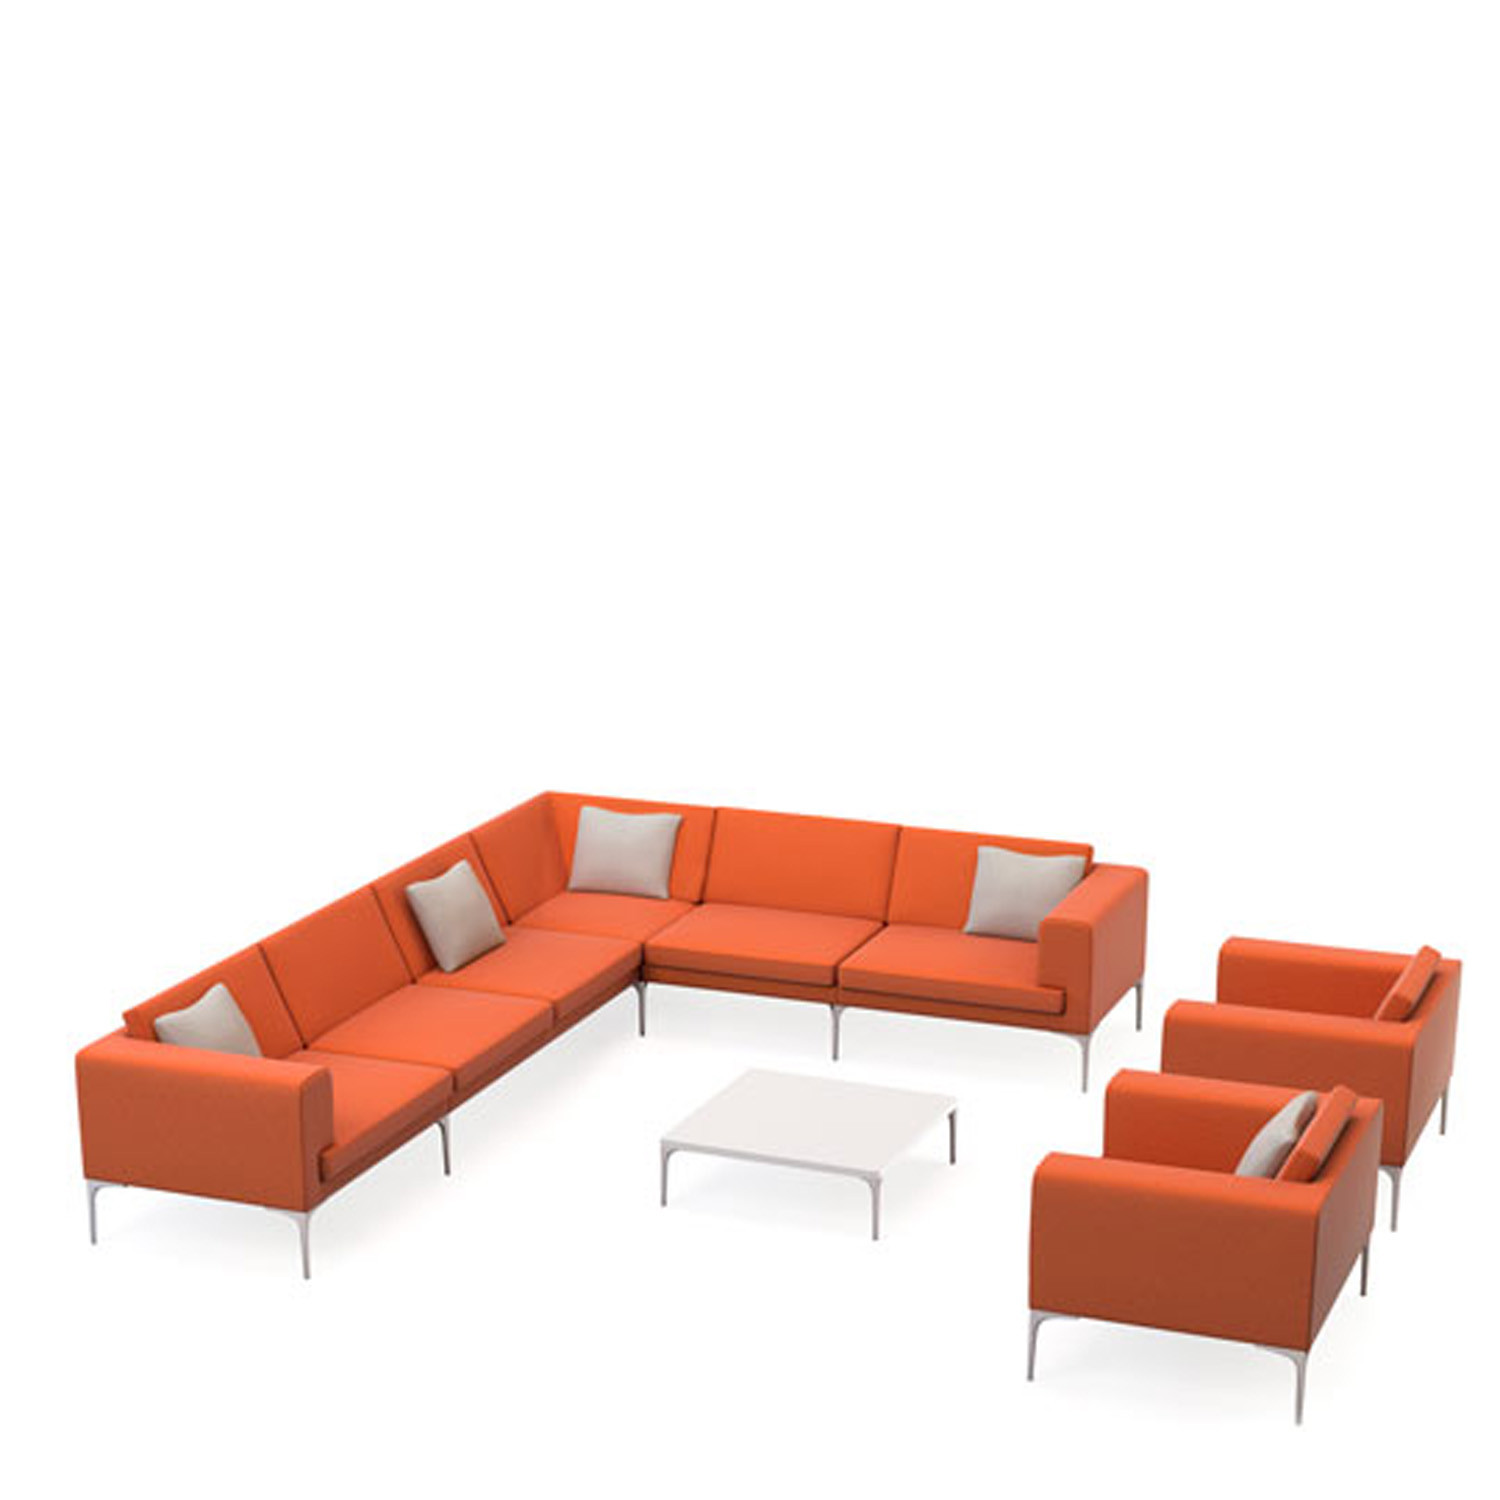 Vale Sofa System